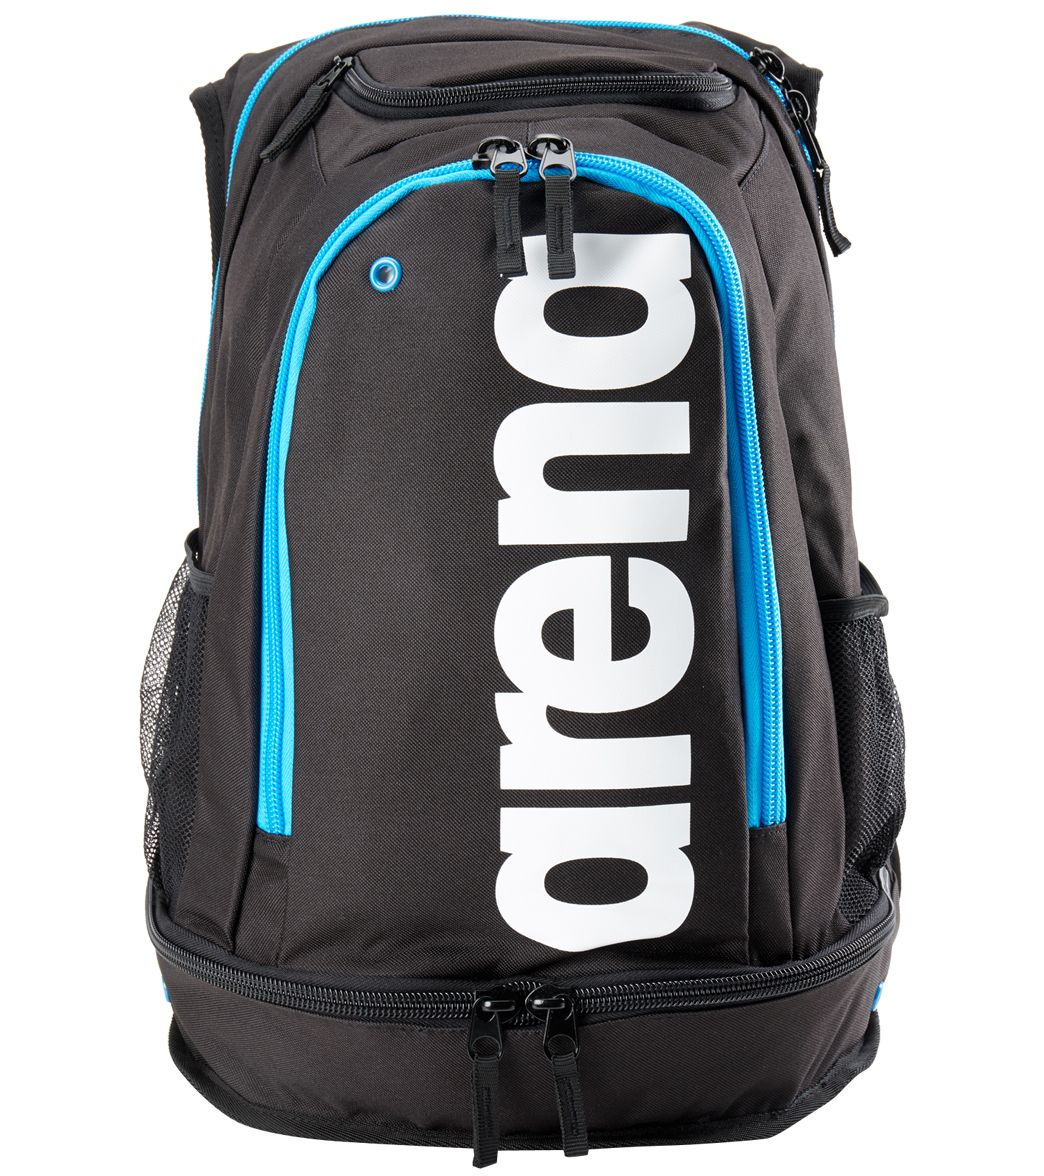 Arena Fastpack Core Backpack at SwimOutlet.com - Free Shipping 6af0b7adc